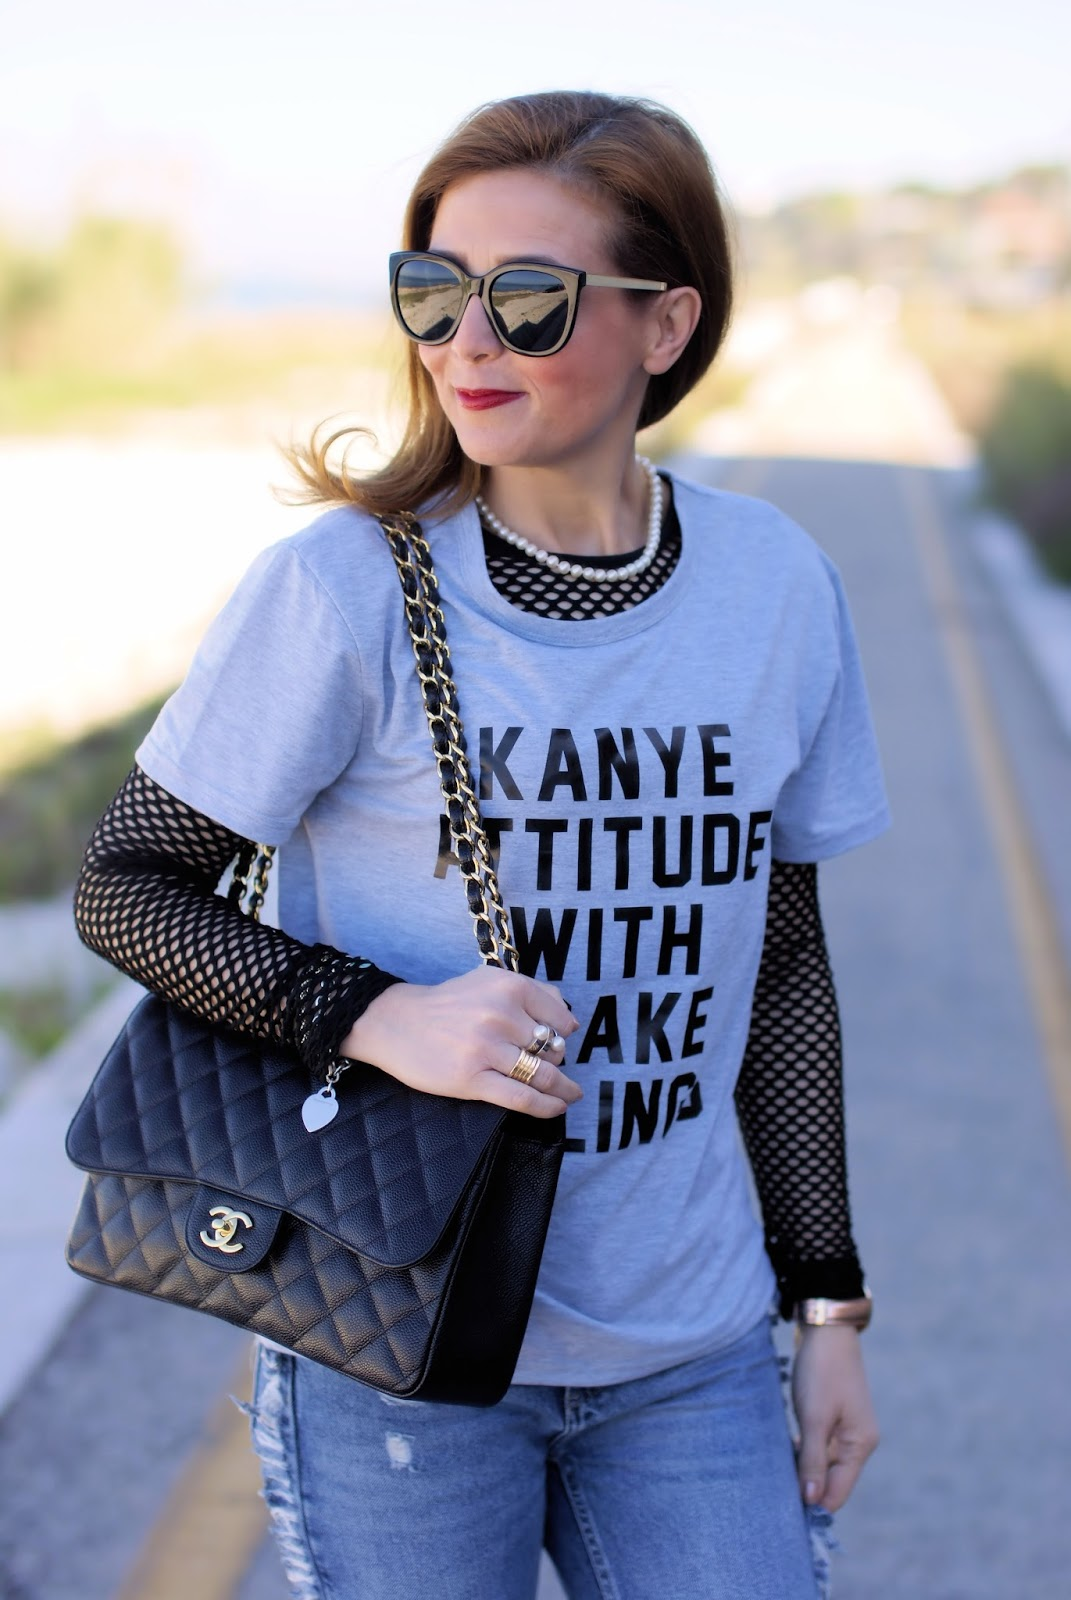 Kanye attitude with Drake feelings and Chanel bag on Fashion and Cookies fashion blog, fashion blogger style